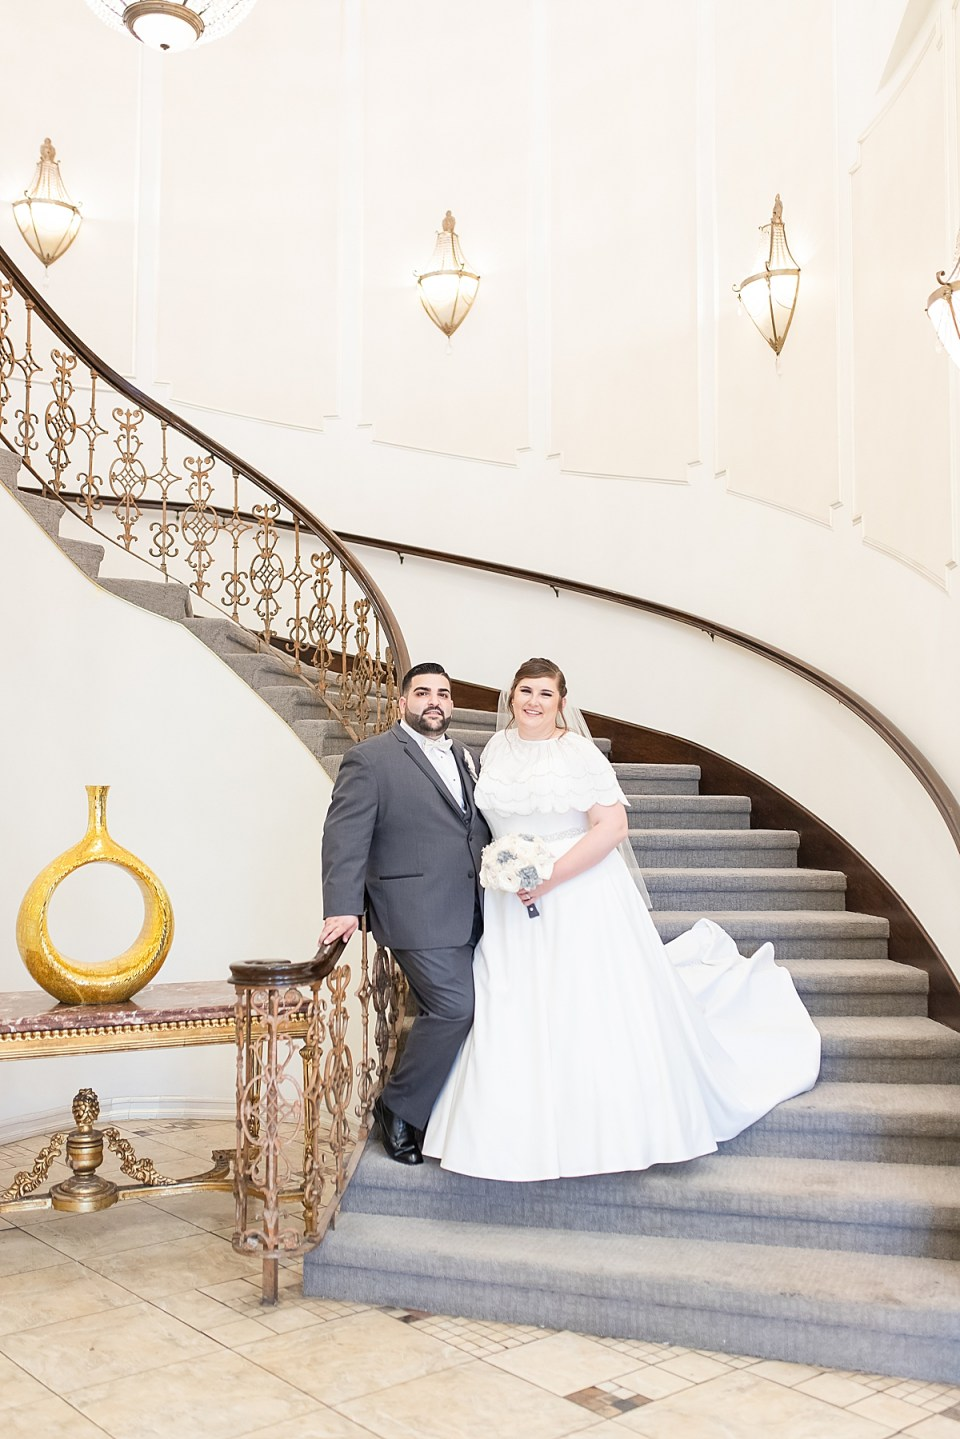 Betsy & Michael smiling at the camera while they stand on the staircase.